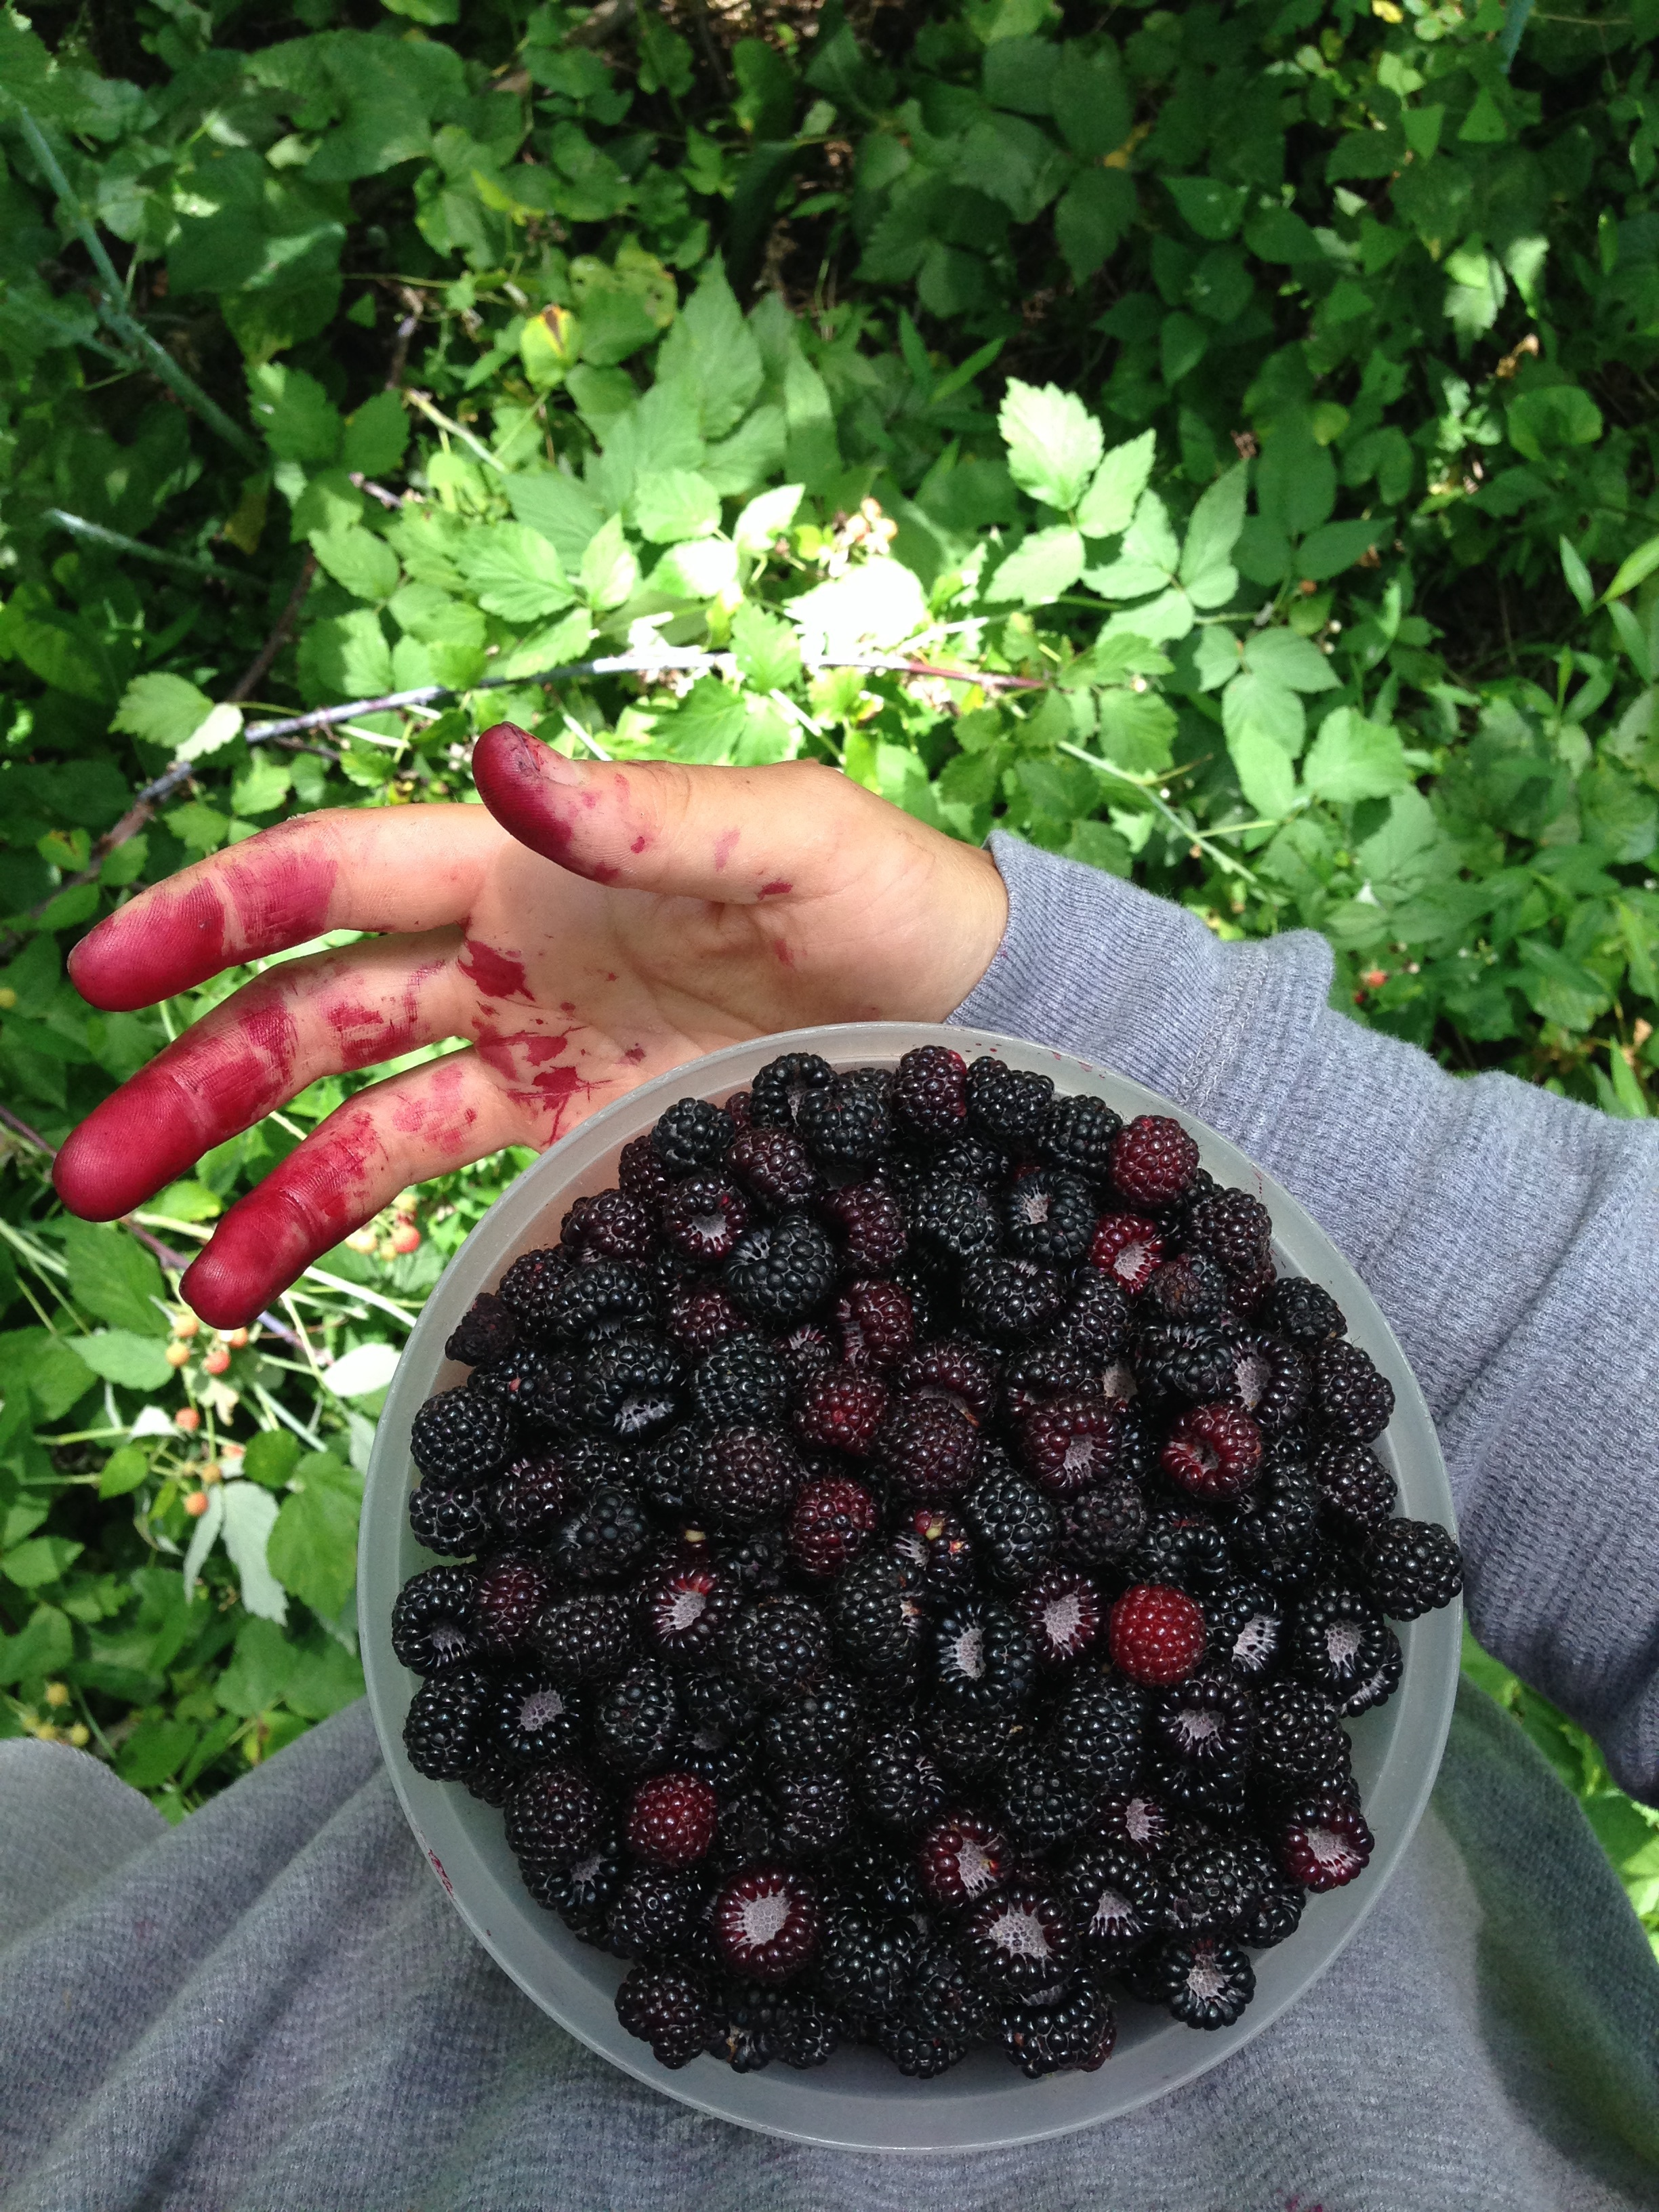 Hands smothered (and mouth) is raspberry juice from one of the most joyful harvests I've had thus far this season.